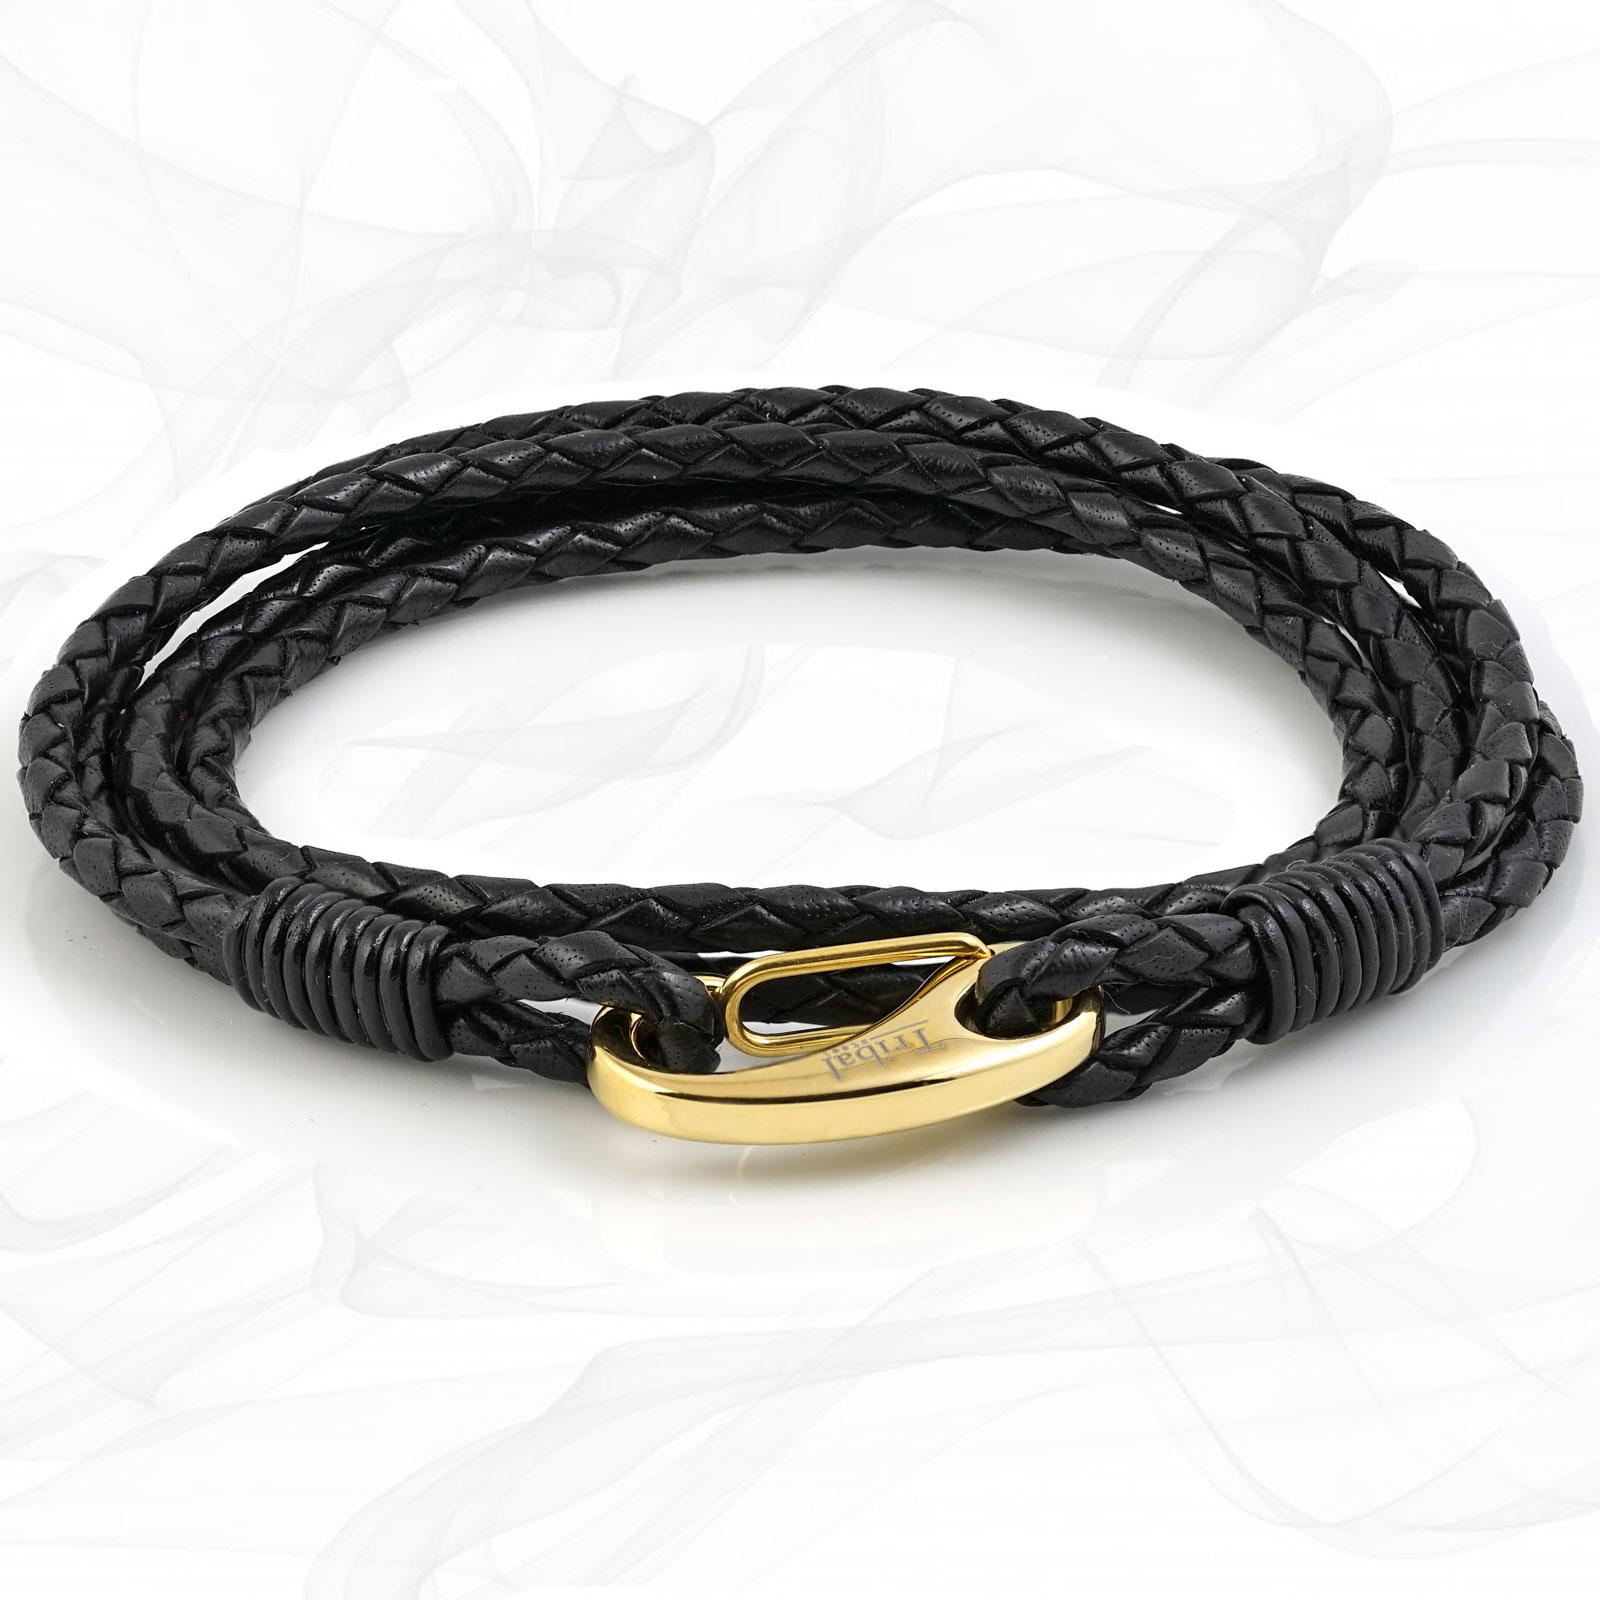 Mens Elegant Black Quad Wrap Bolo Leather Bracelet with Gold Colored Steel Lobster Clasp by Tribal Steel